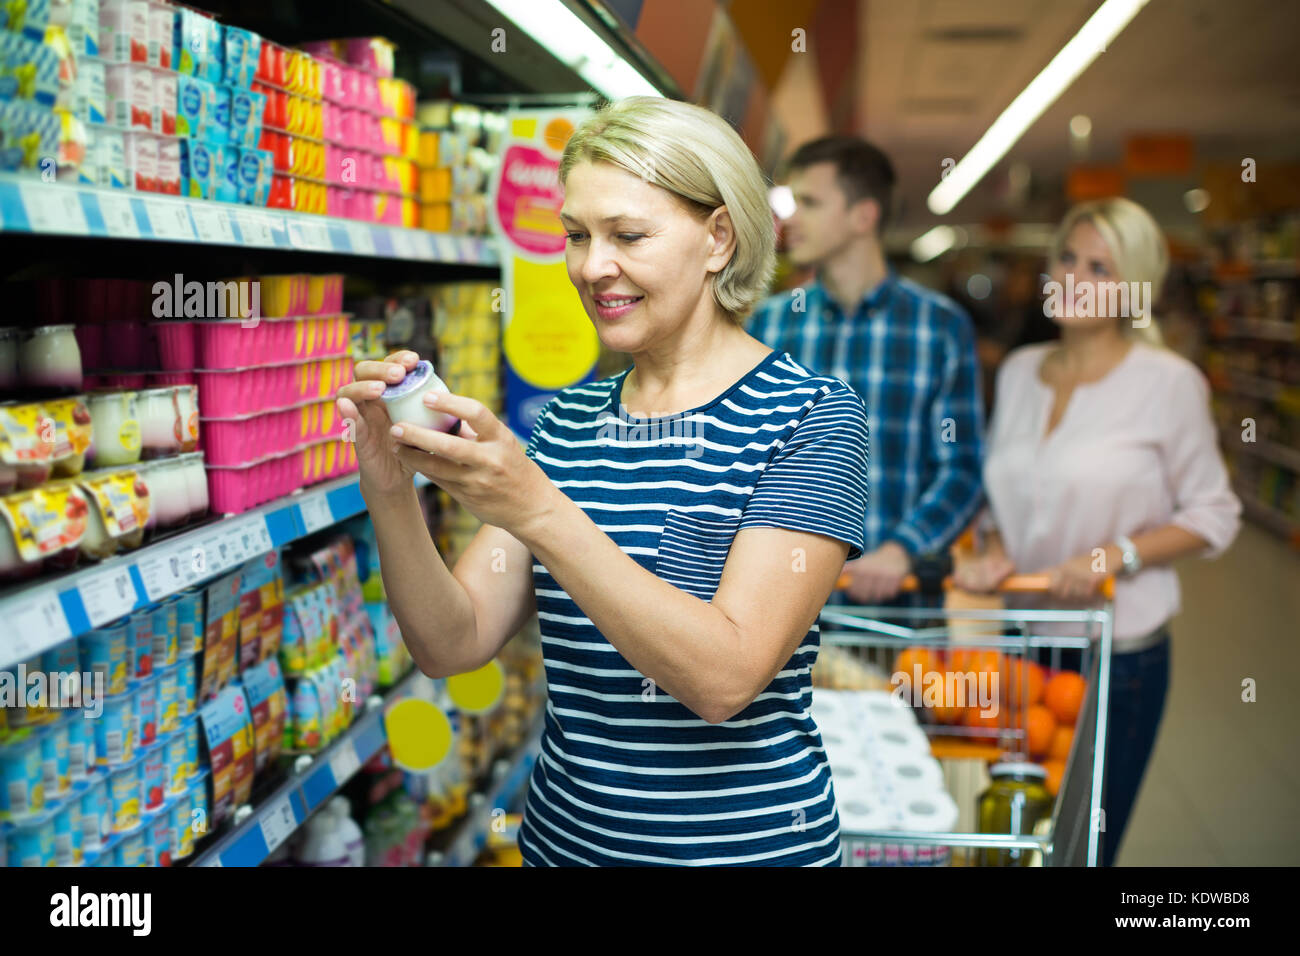 Dairy Section Stock Photos & Dairy Section Stock Images - Alamy